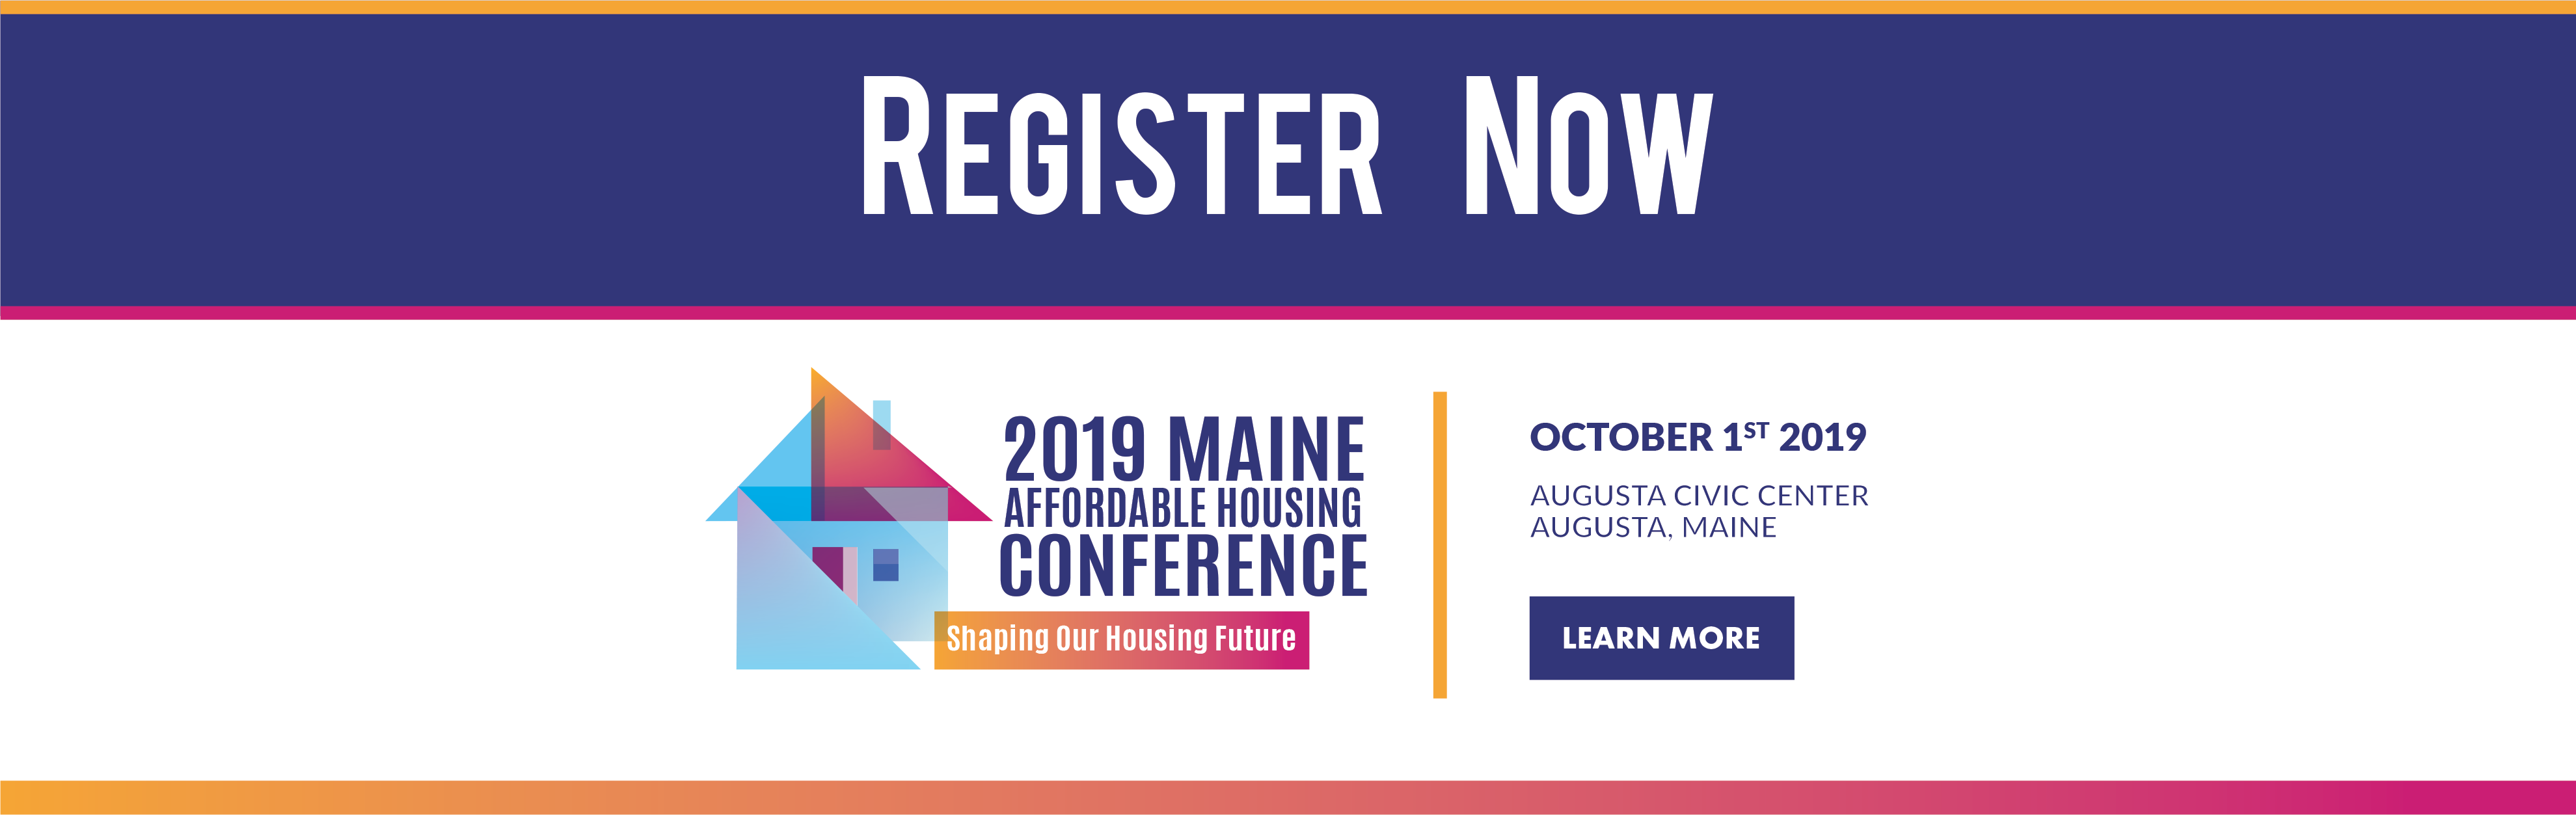 Register Now - 2019 Maine Affordable Housing Conference